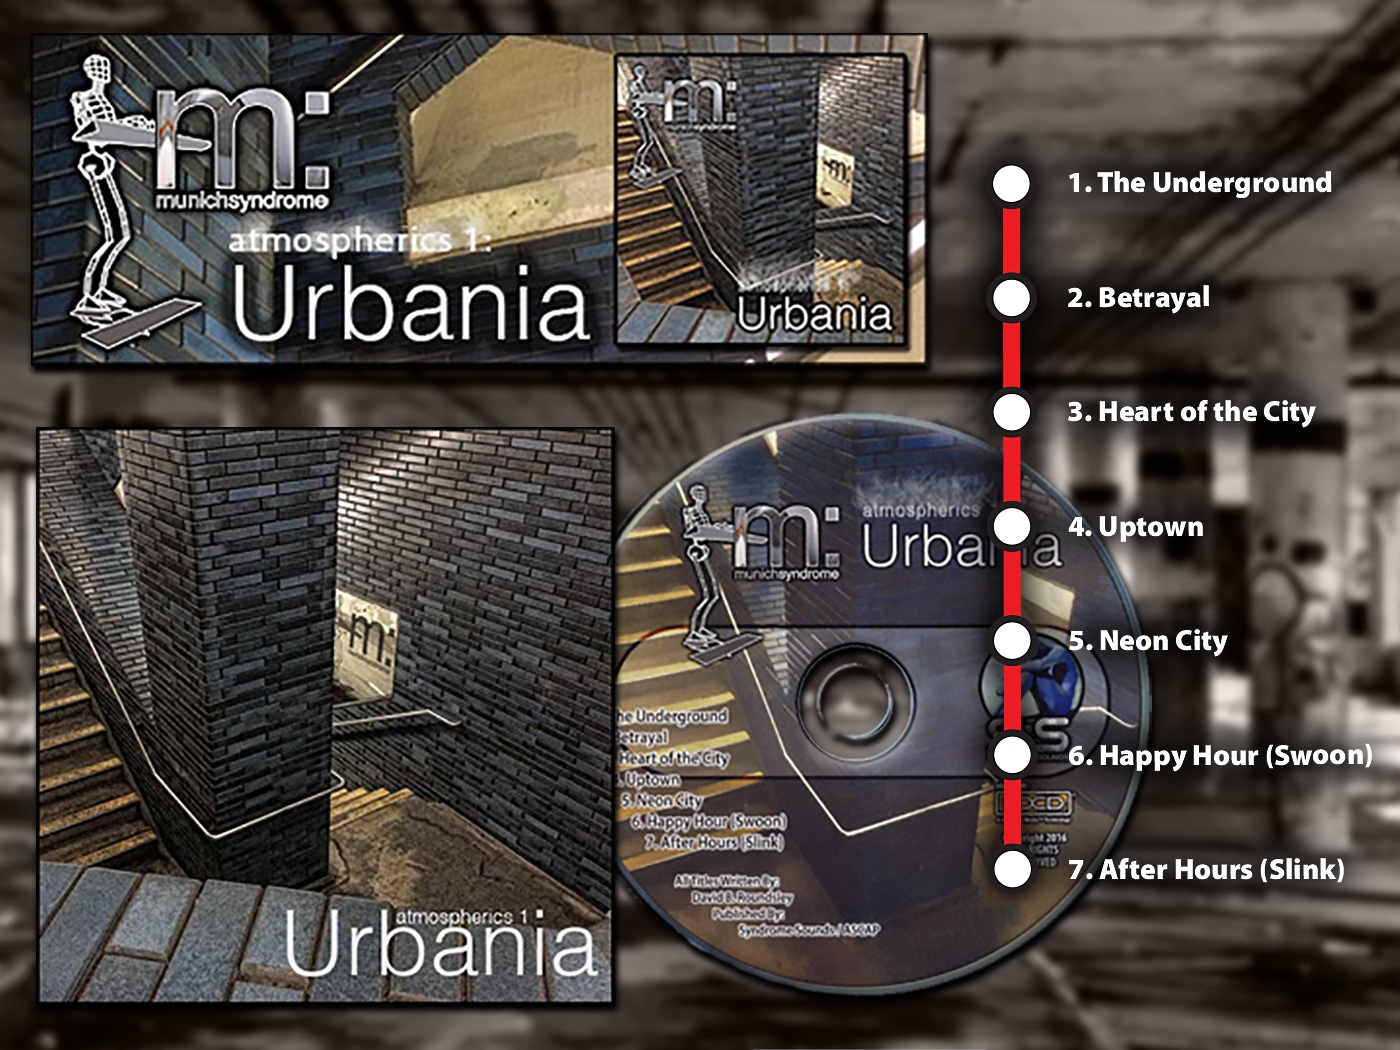 Atmospherics 1: Urbnania -A journey into the heart of the city